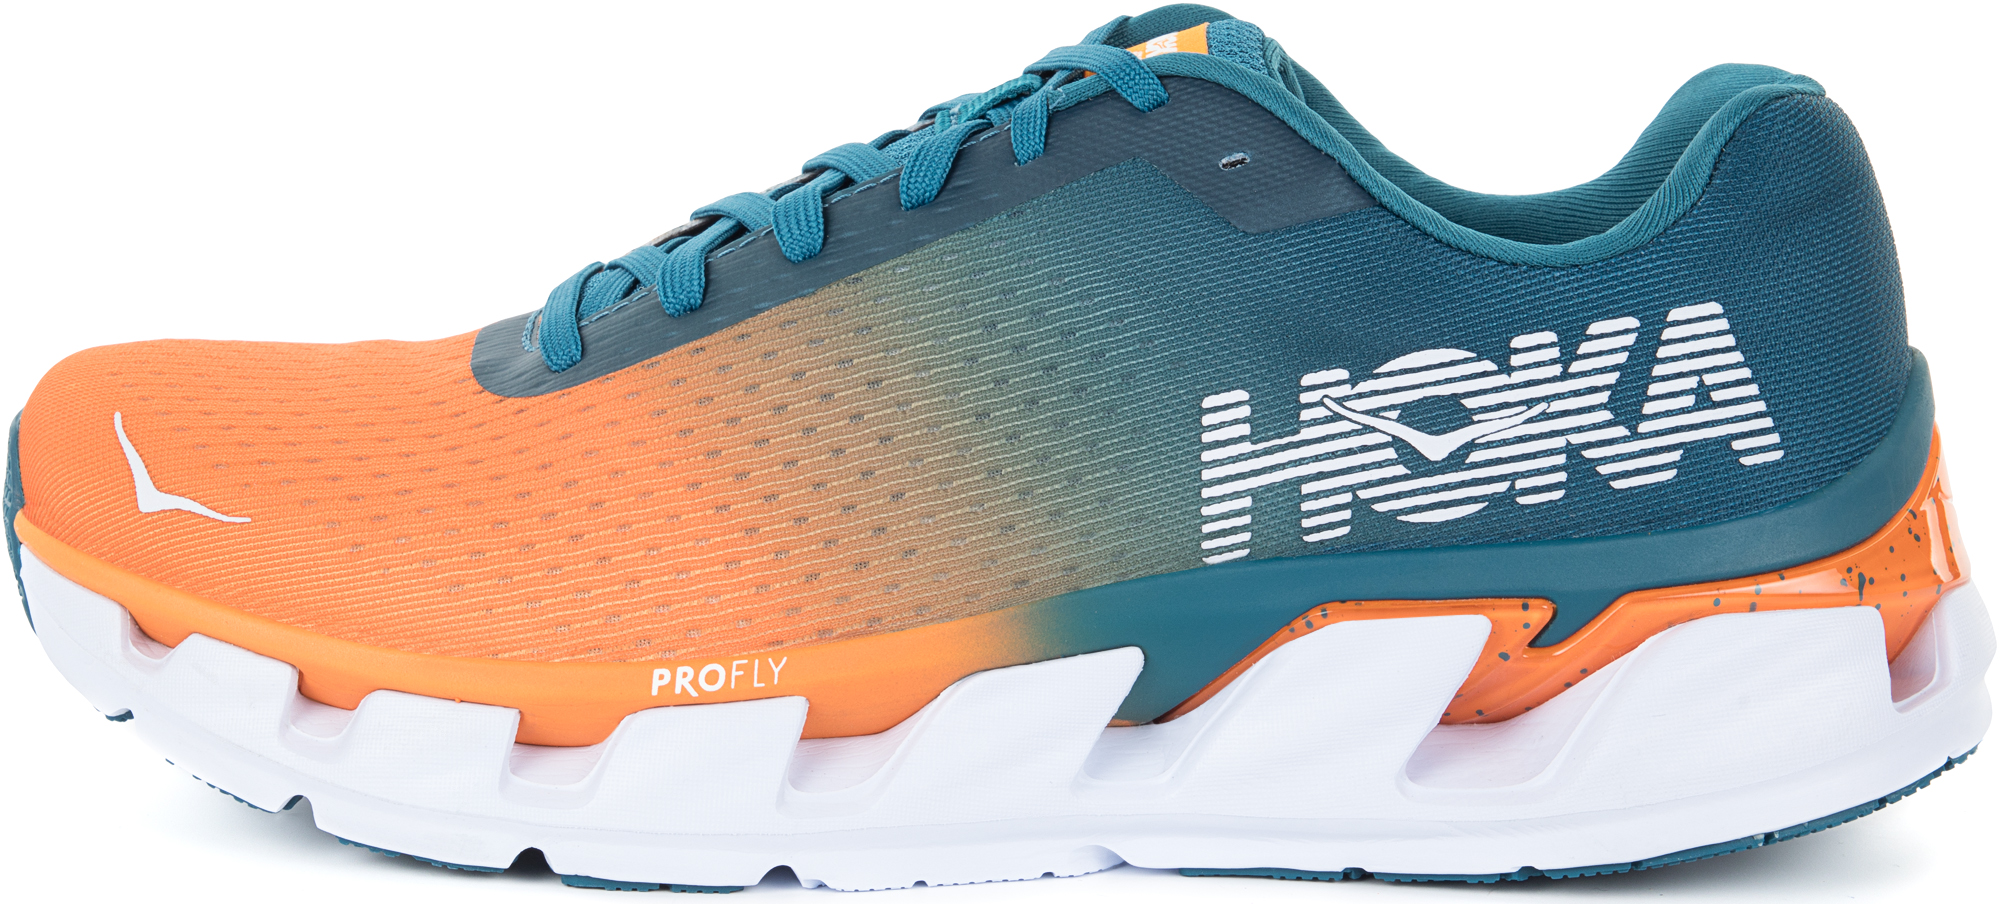 HOKA ONE ONE Кроссовки мужские HOKA ONE ONE Elevon, размер 47,5 hoka one one women s w conquest running shoe